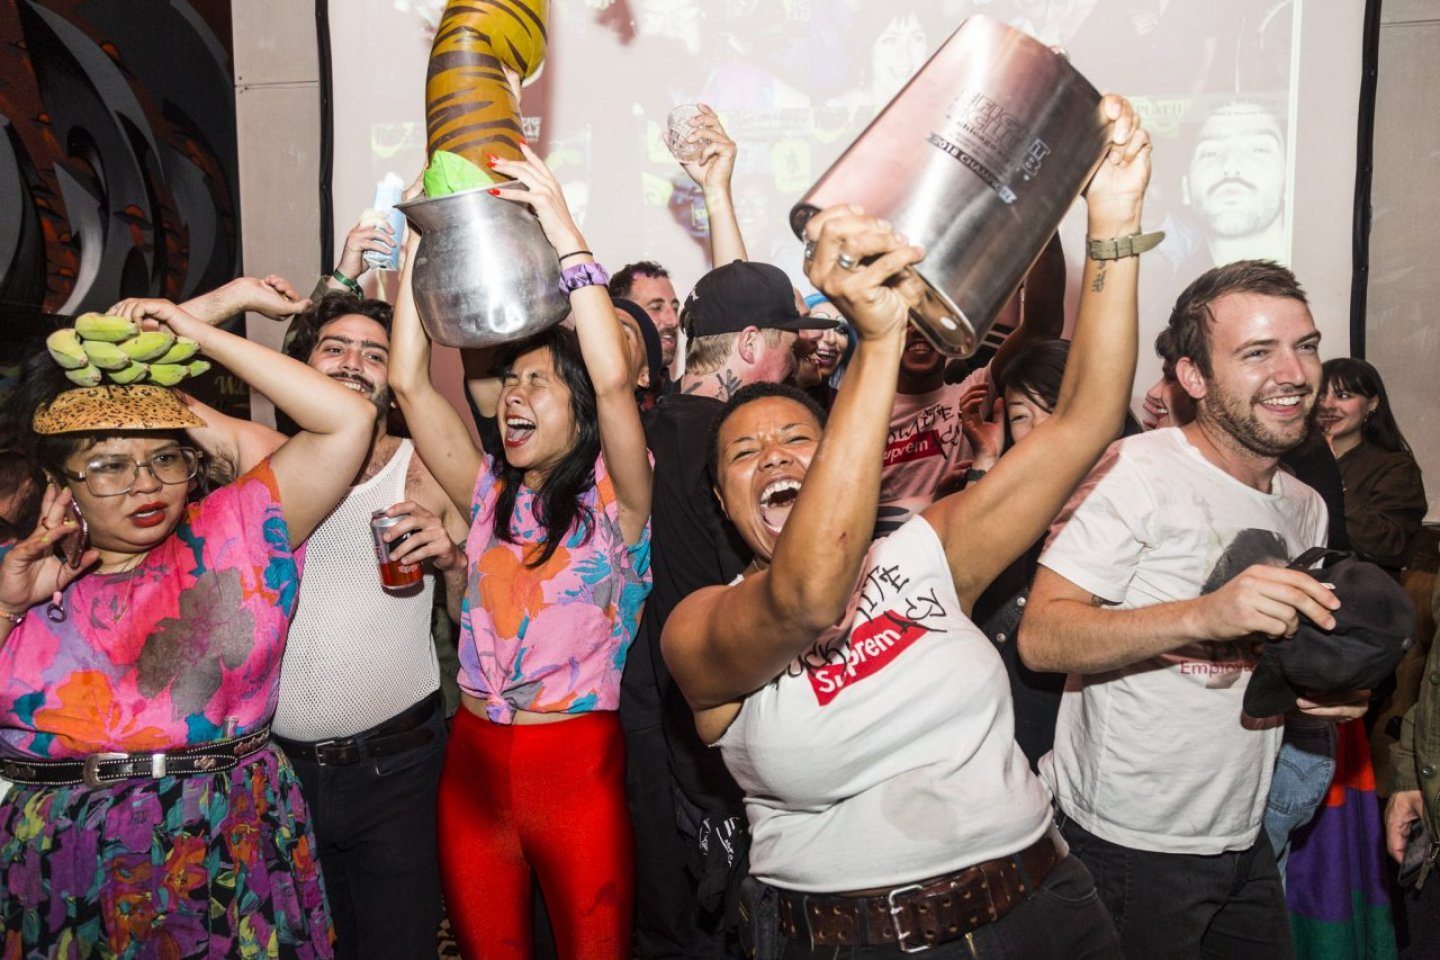 NeatPour.com: Best of Chicago Style's Bar Fight Club in Photos